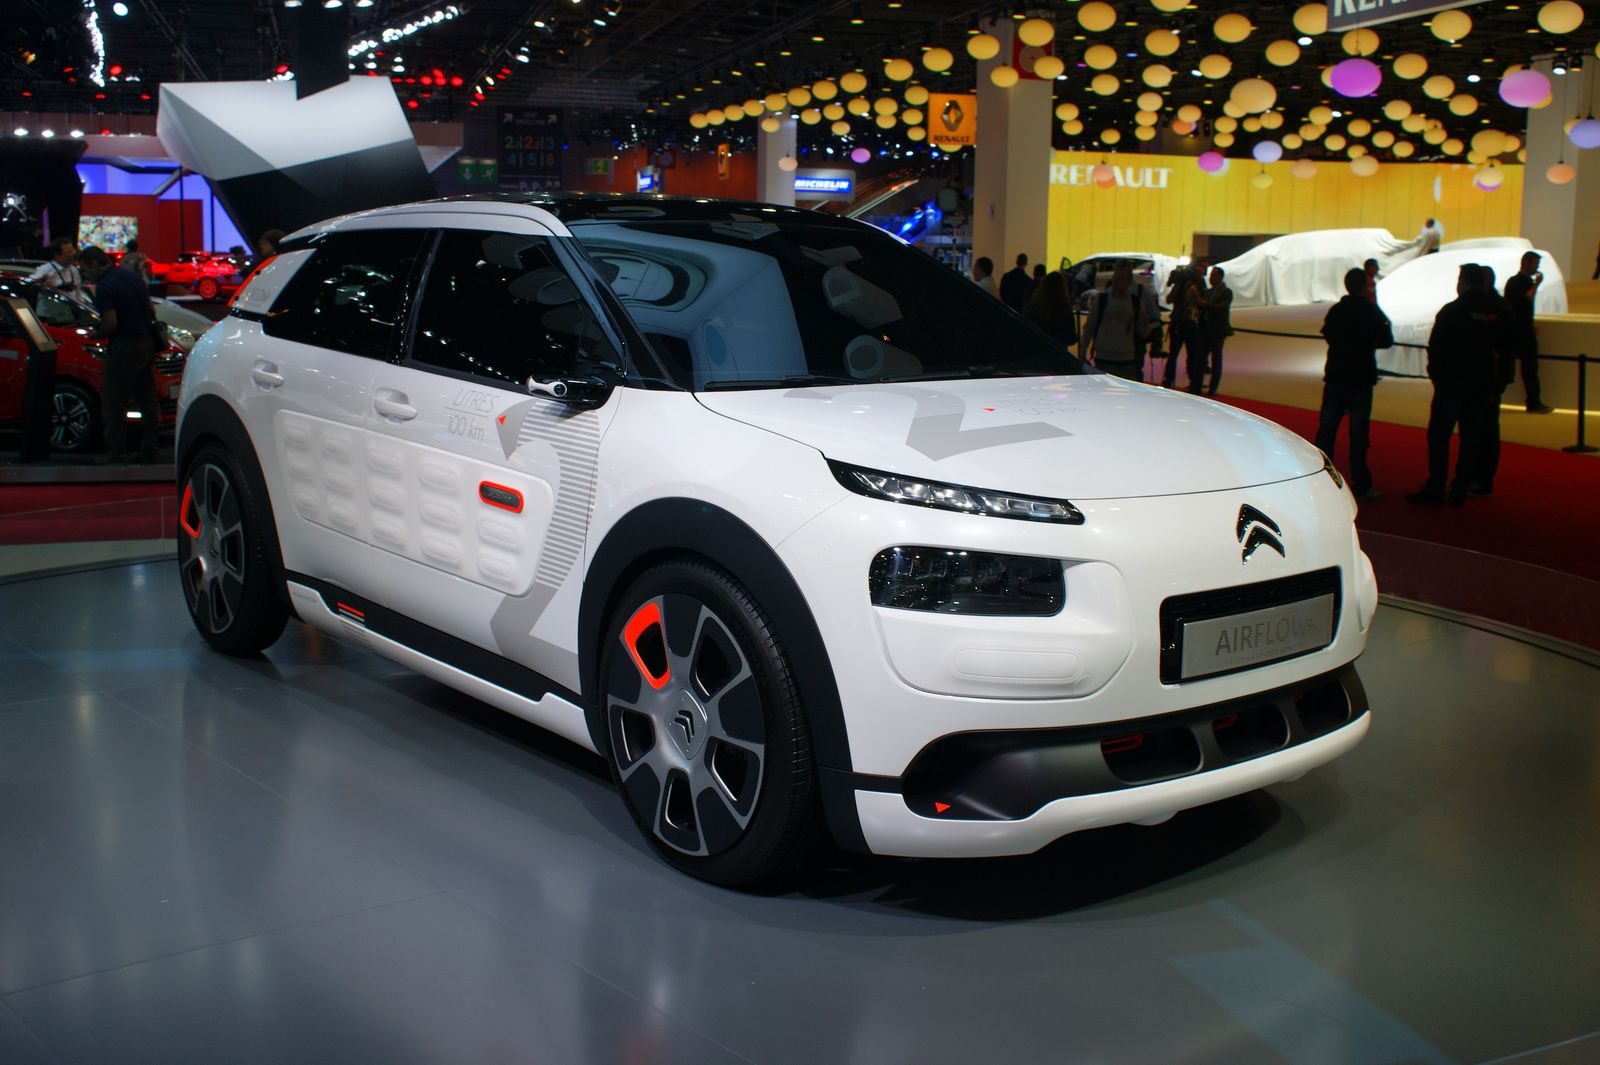 2017 citroen c4 cactus review specs price. Black Bedroom Furniture Sets. Home Design Ideas